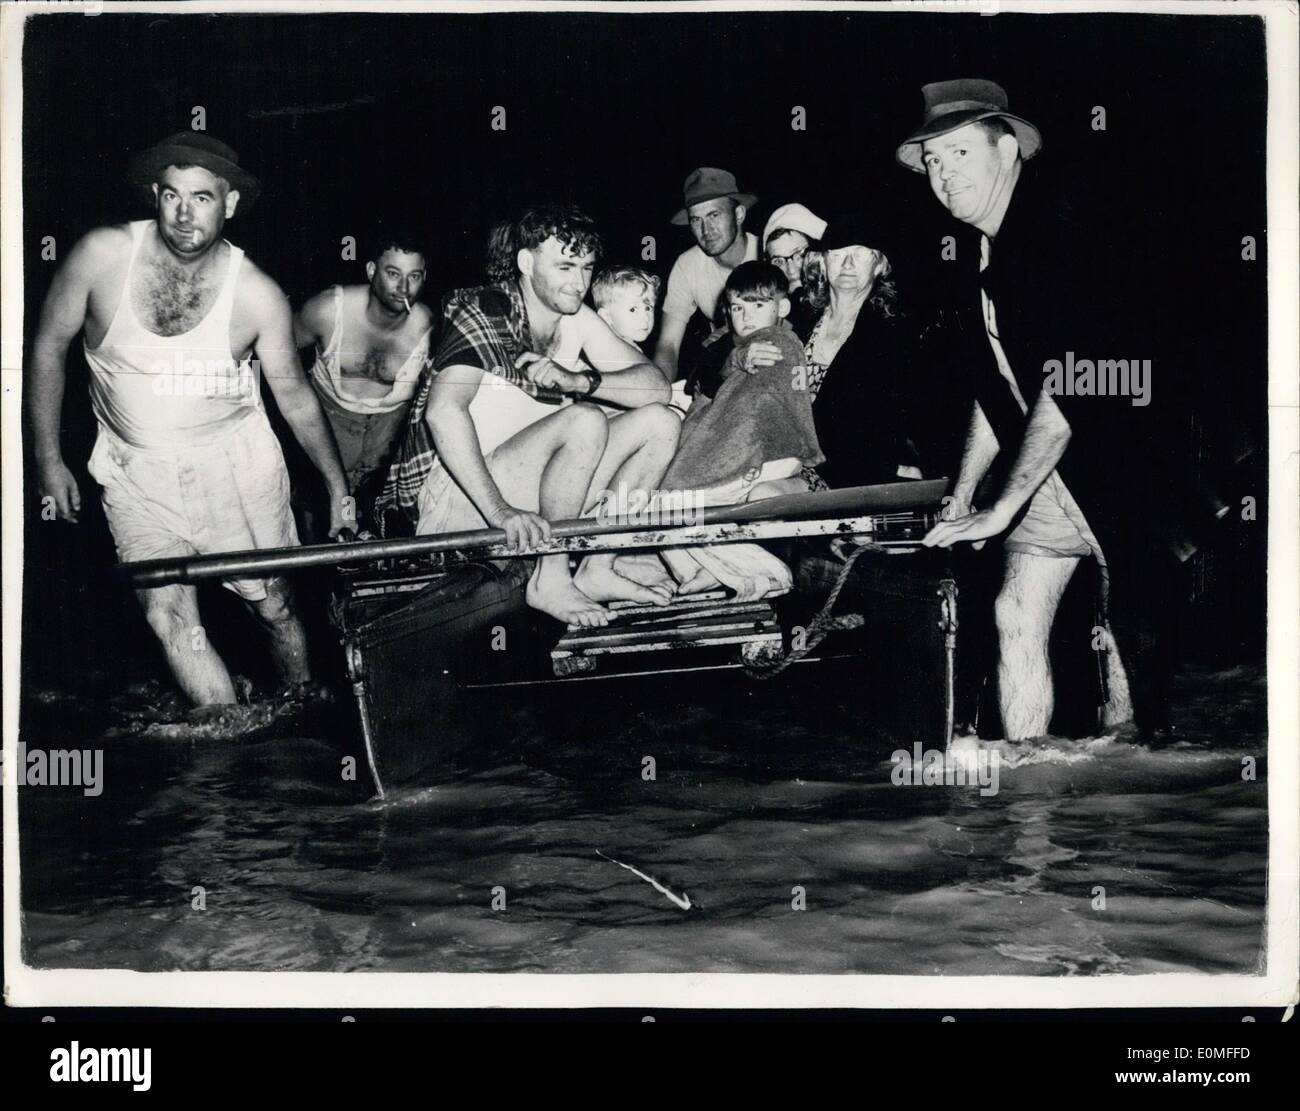 Mar. 03, 1955 - FOLLD HAVOC IN NEW SOUTH WALES. 100 DIE AND 50,000 REND RED HOMELESS. Photo shows Rescued after Stock Photo